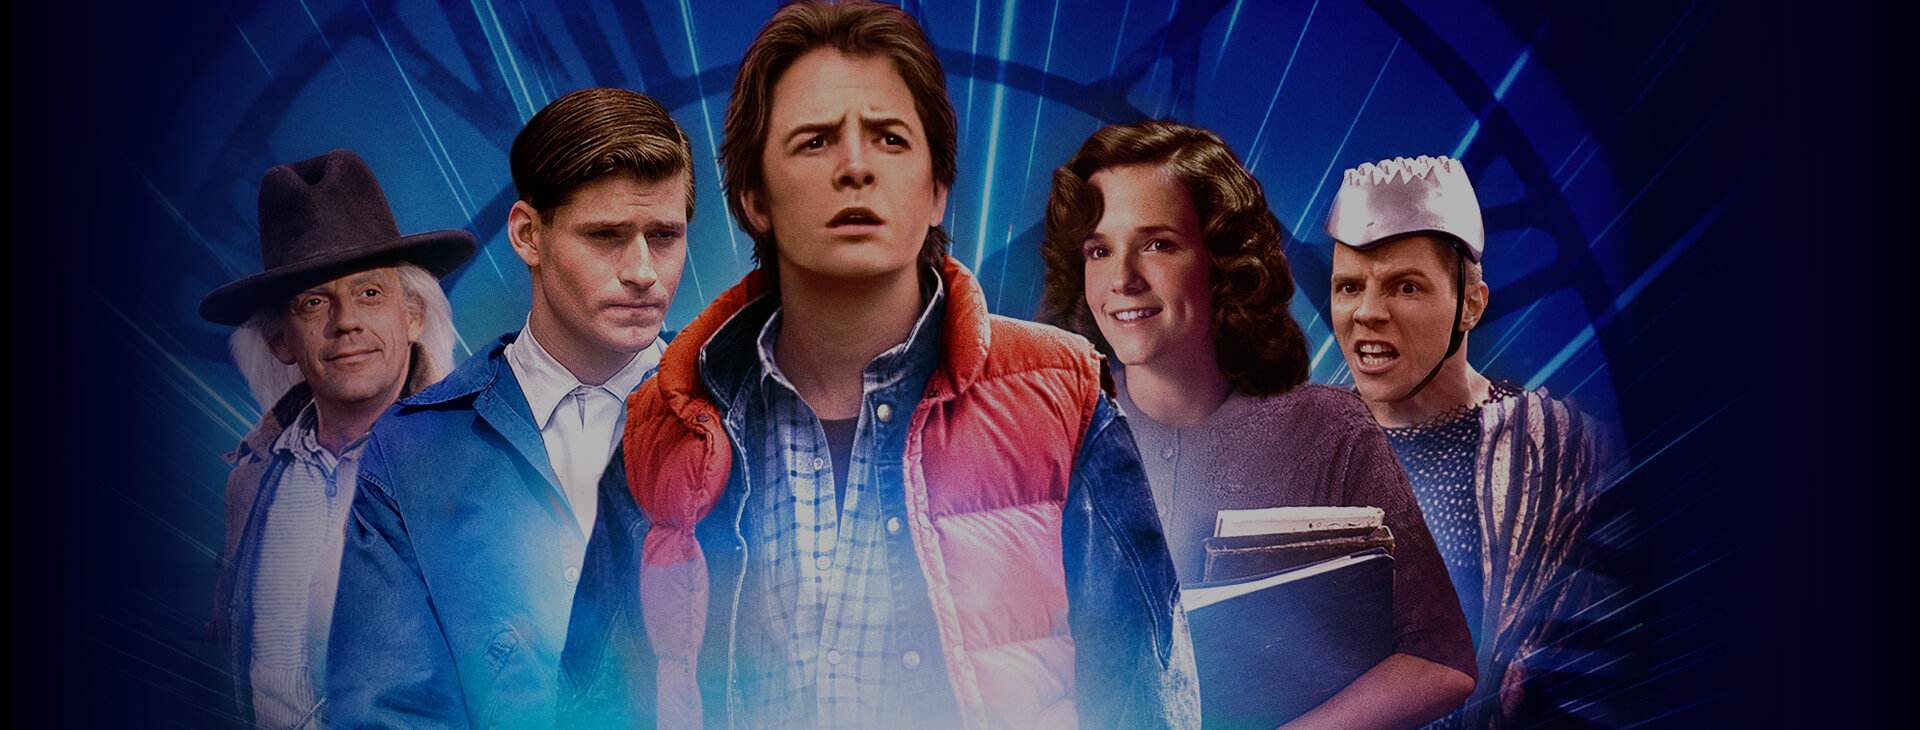 Back to the Future 35th Anniversary - INFLUENCE